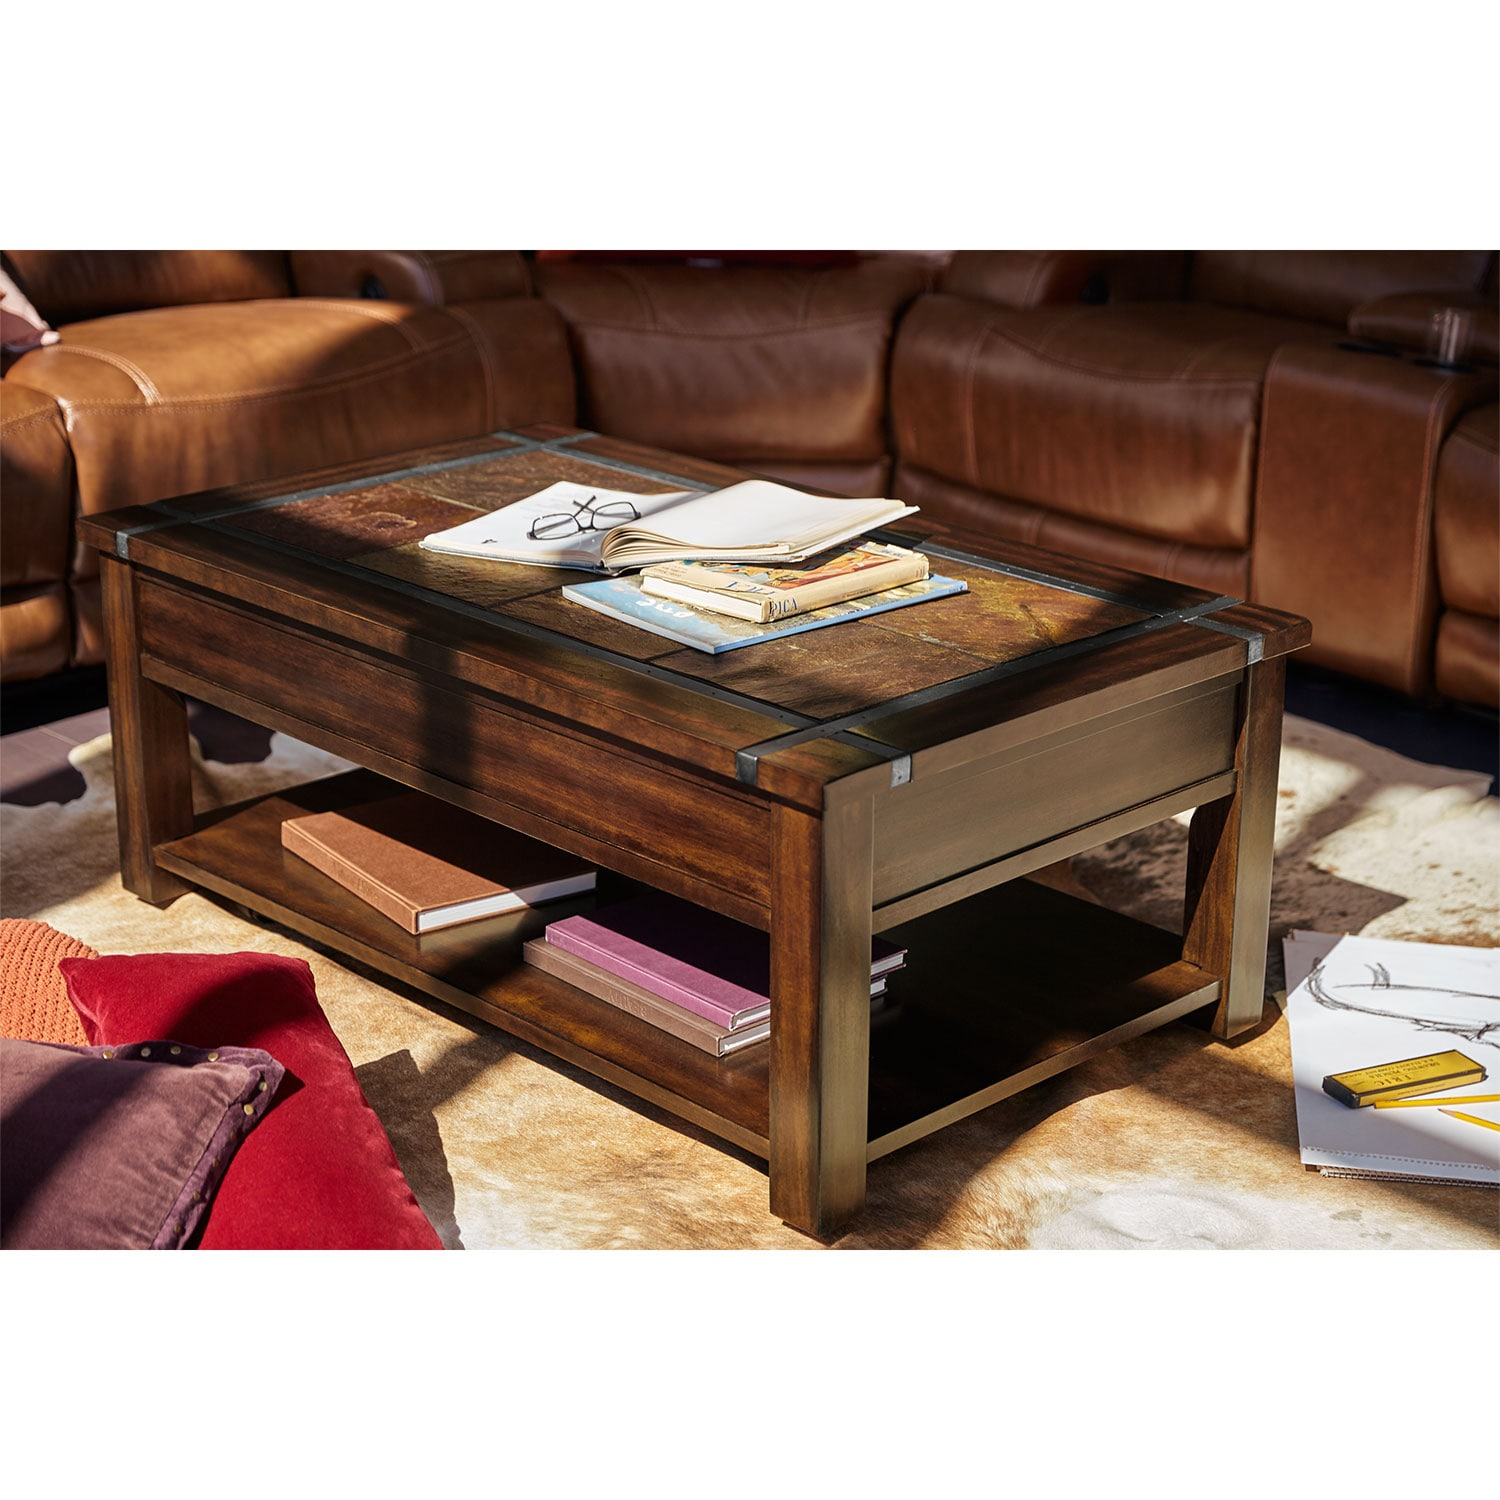 Slate ridge lift top cocktail table cherry american signature furniture Coffee table cherry